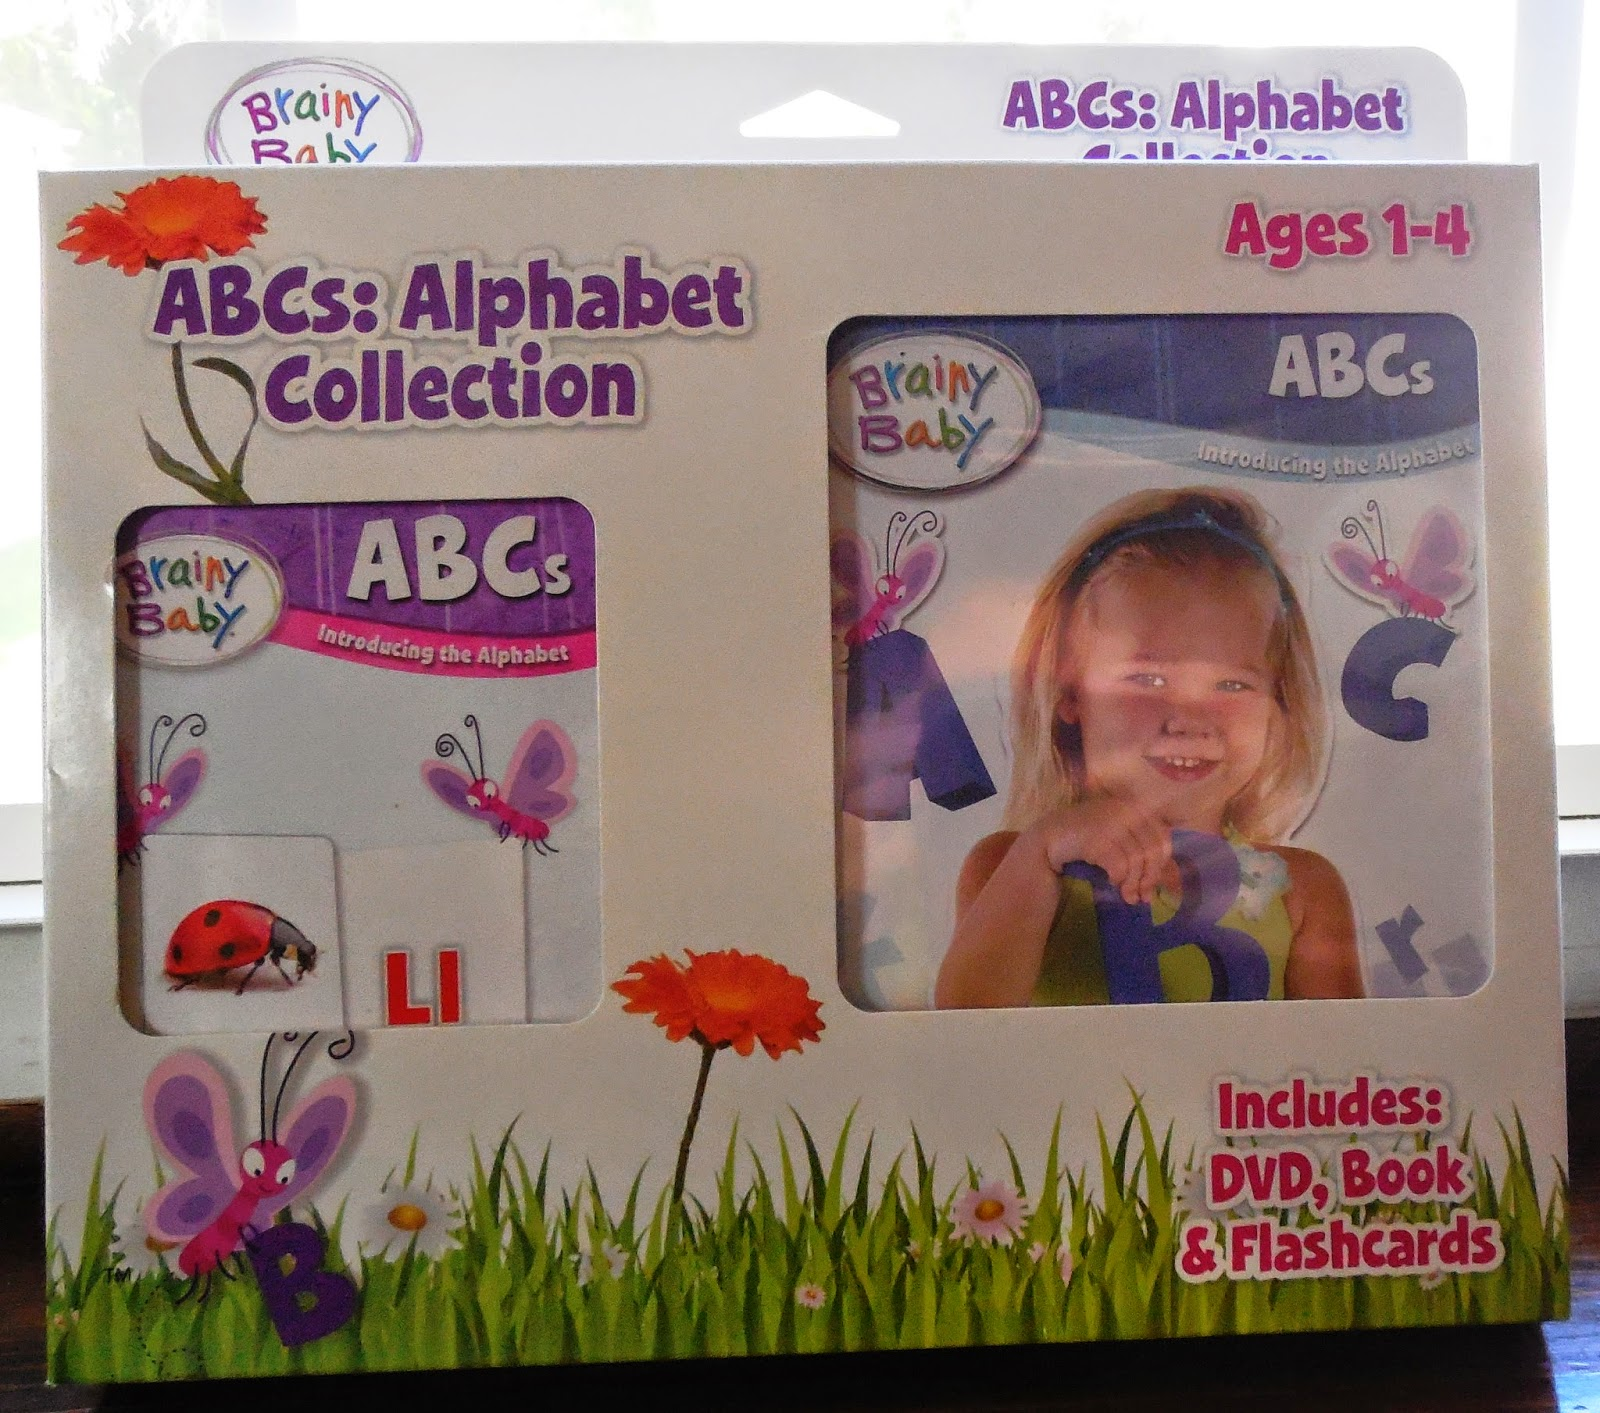 Brainy Baby Alphabet Collection